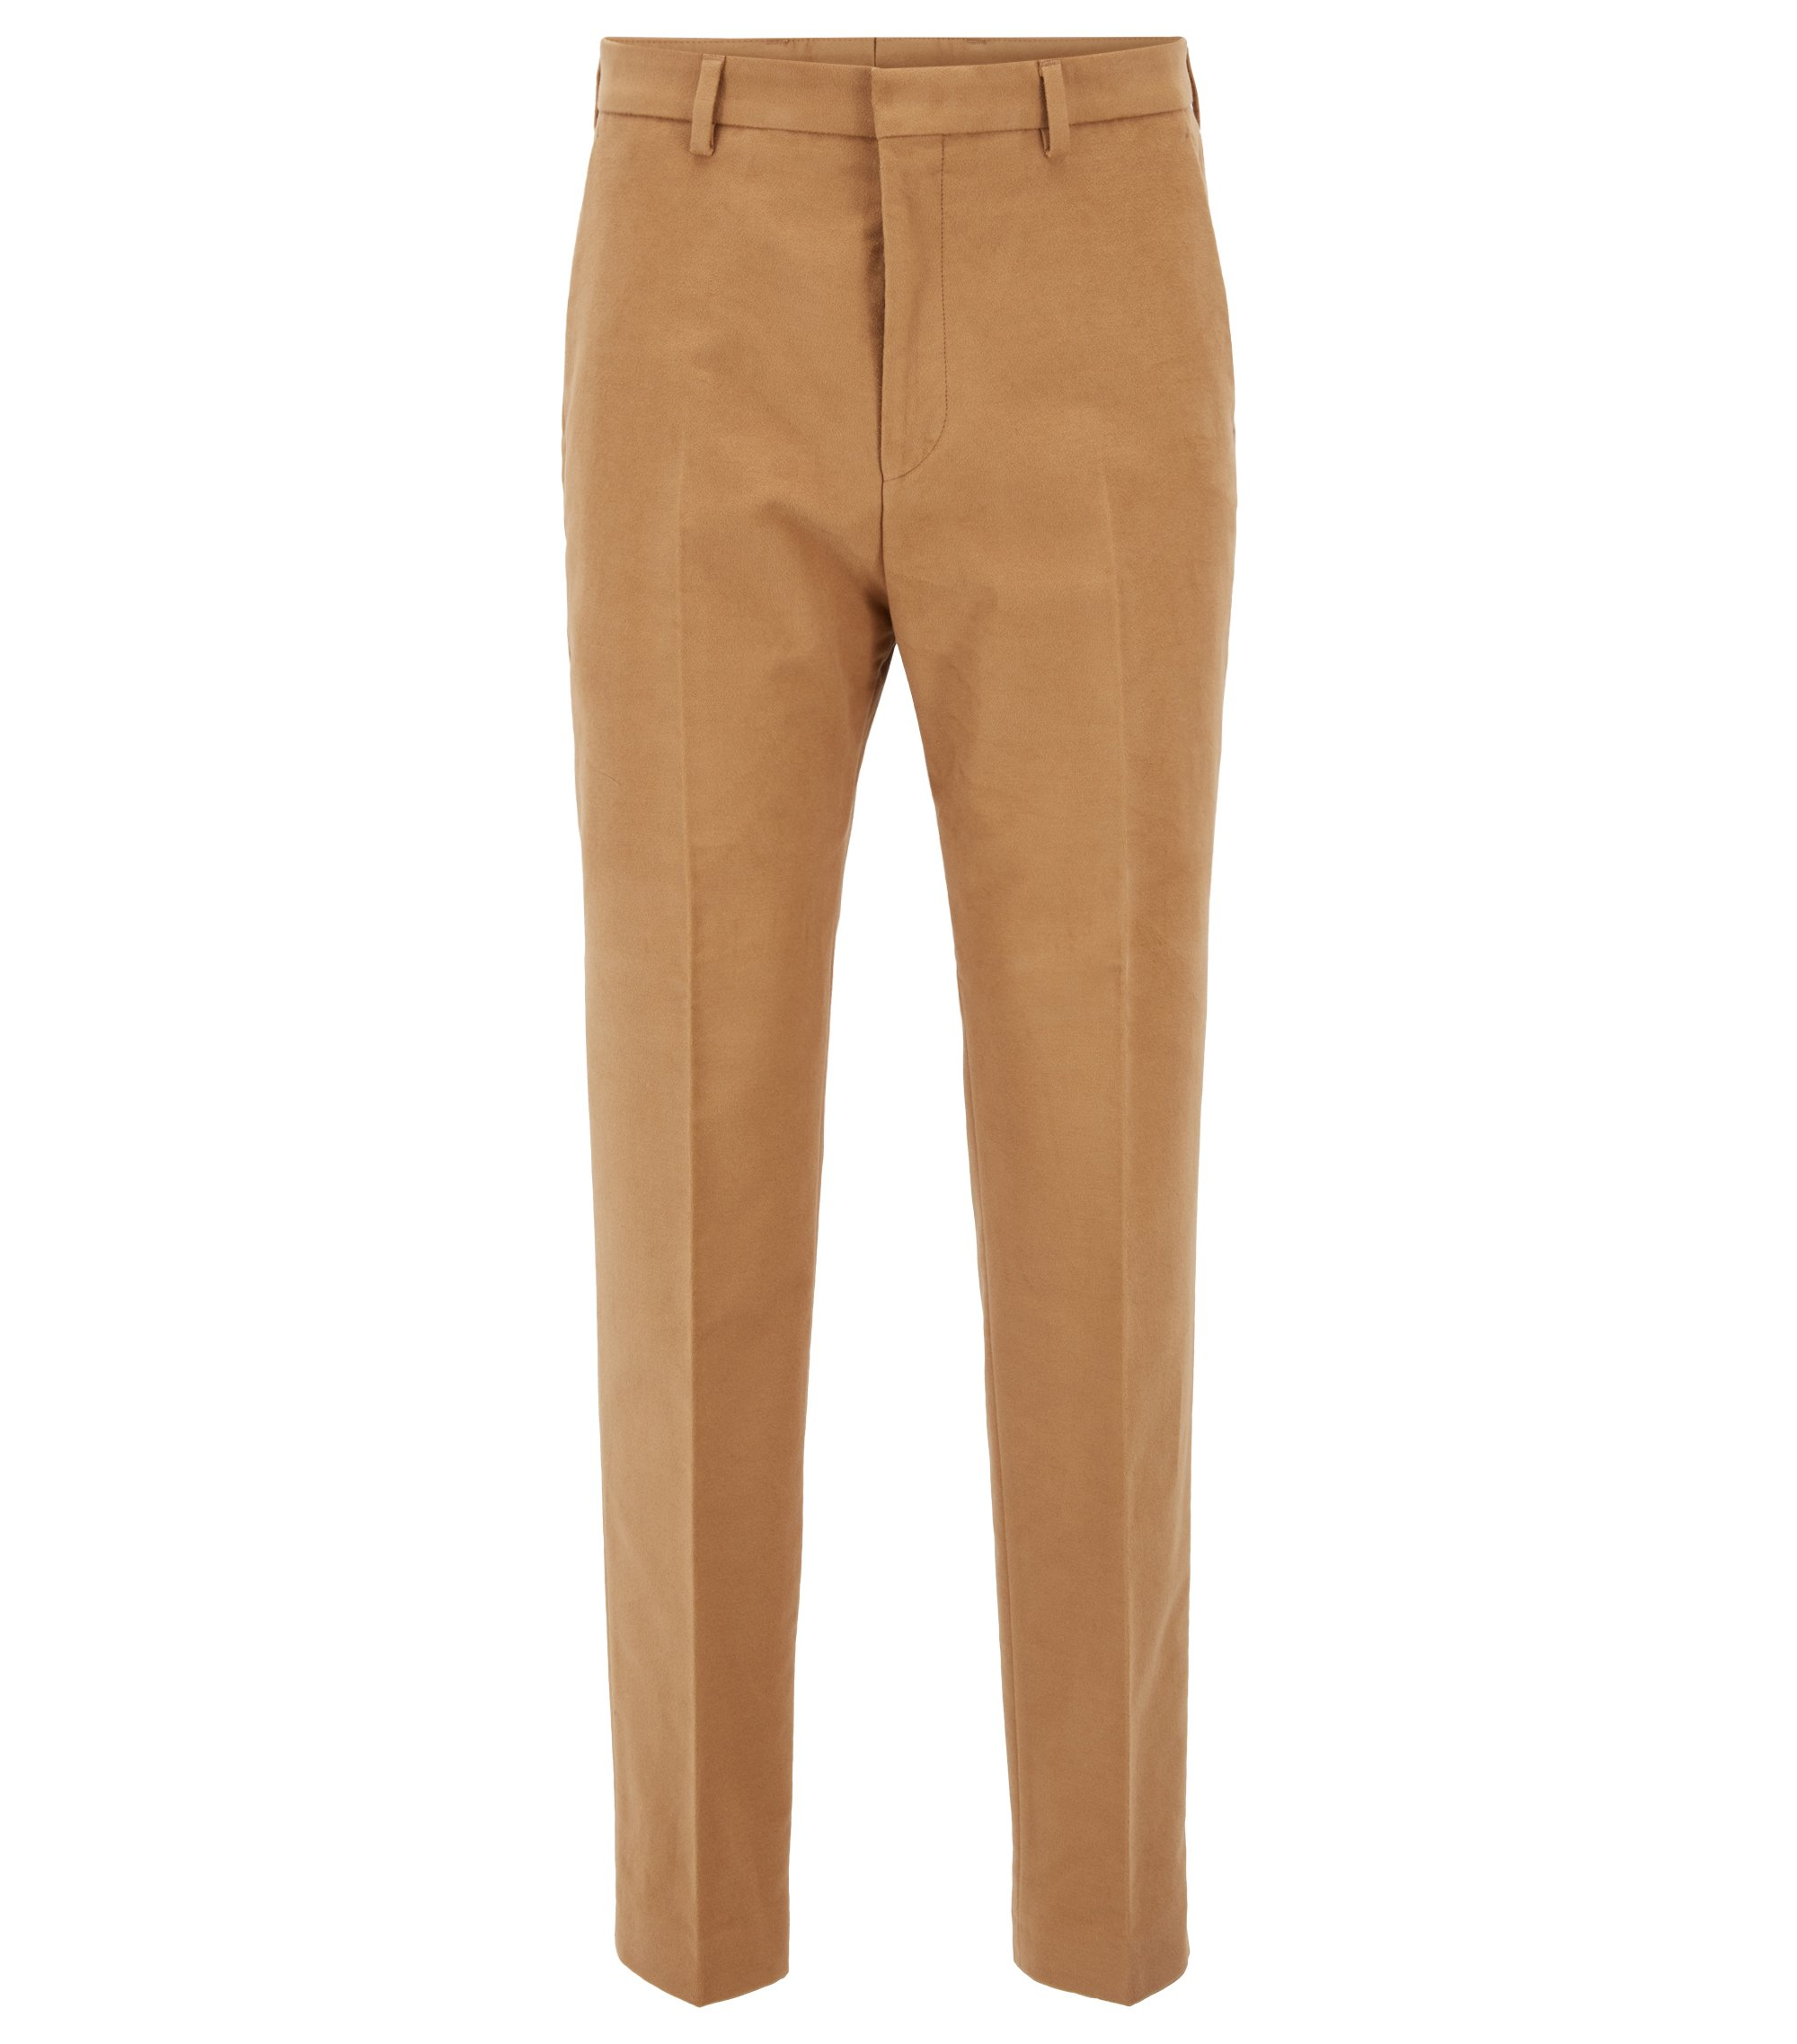 Pantalon Slim Fit raccourci en coton stretch, Kaki